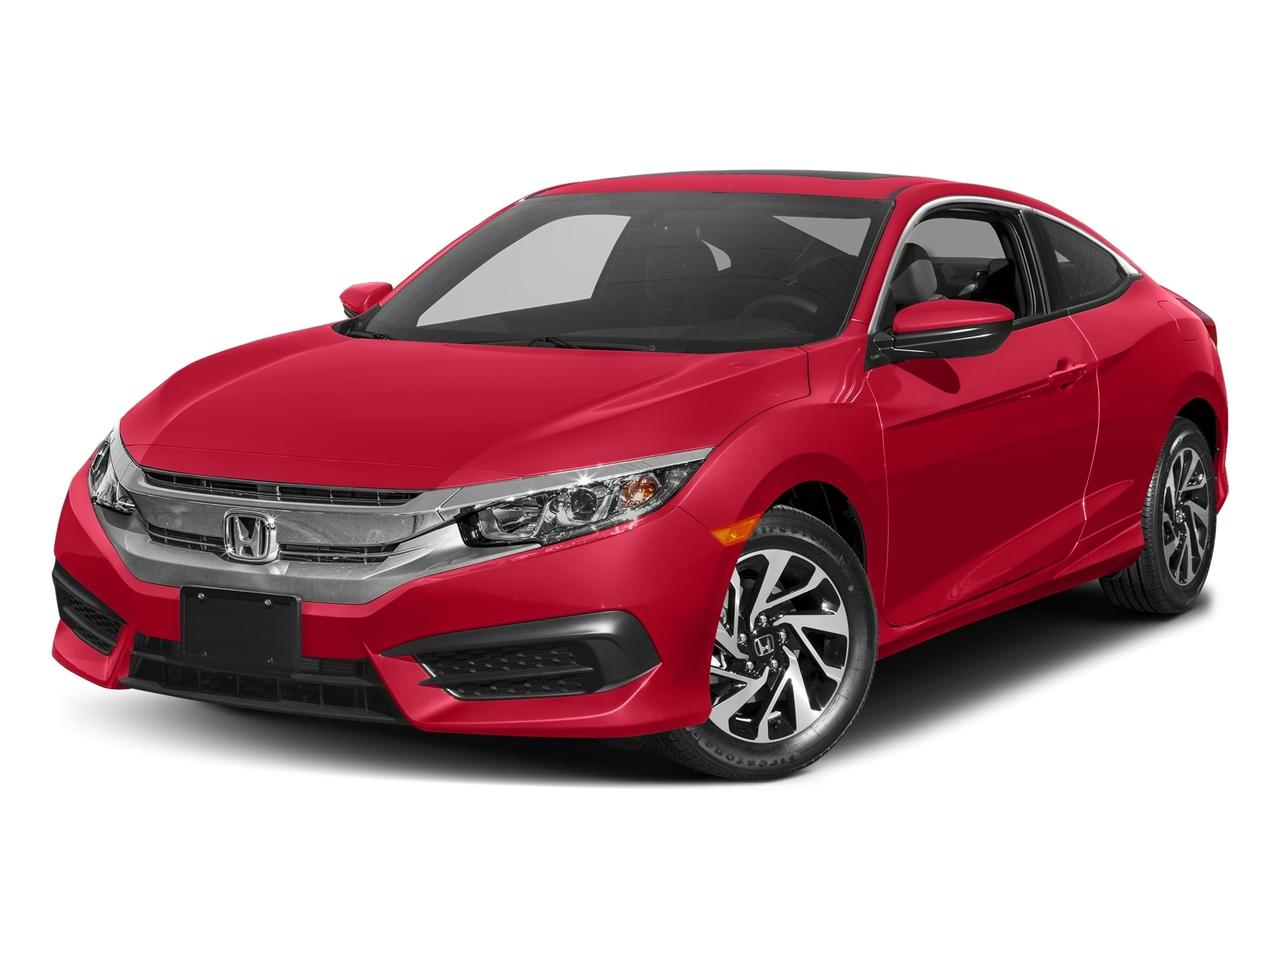 2017 Honda Civic Coupe Vehicle Photo in Kingwood, TX 77339